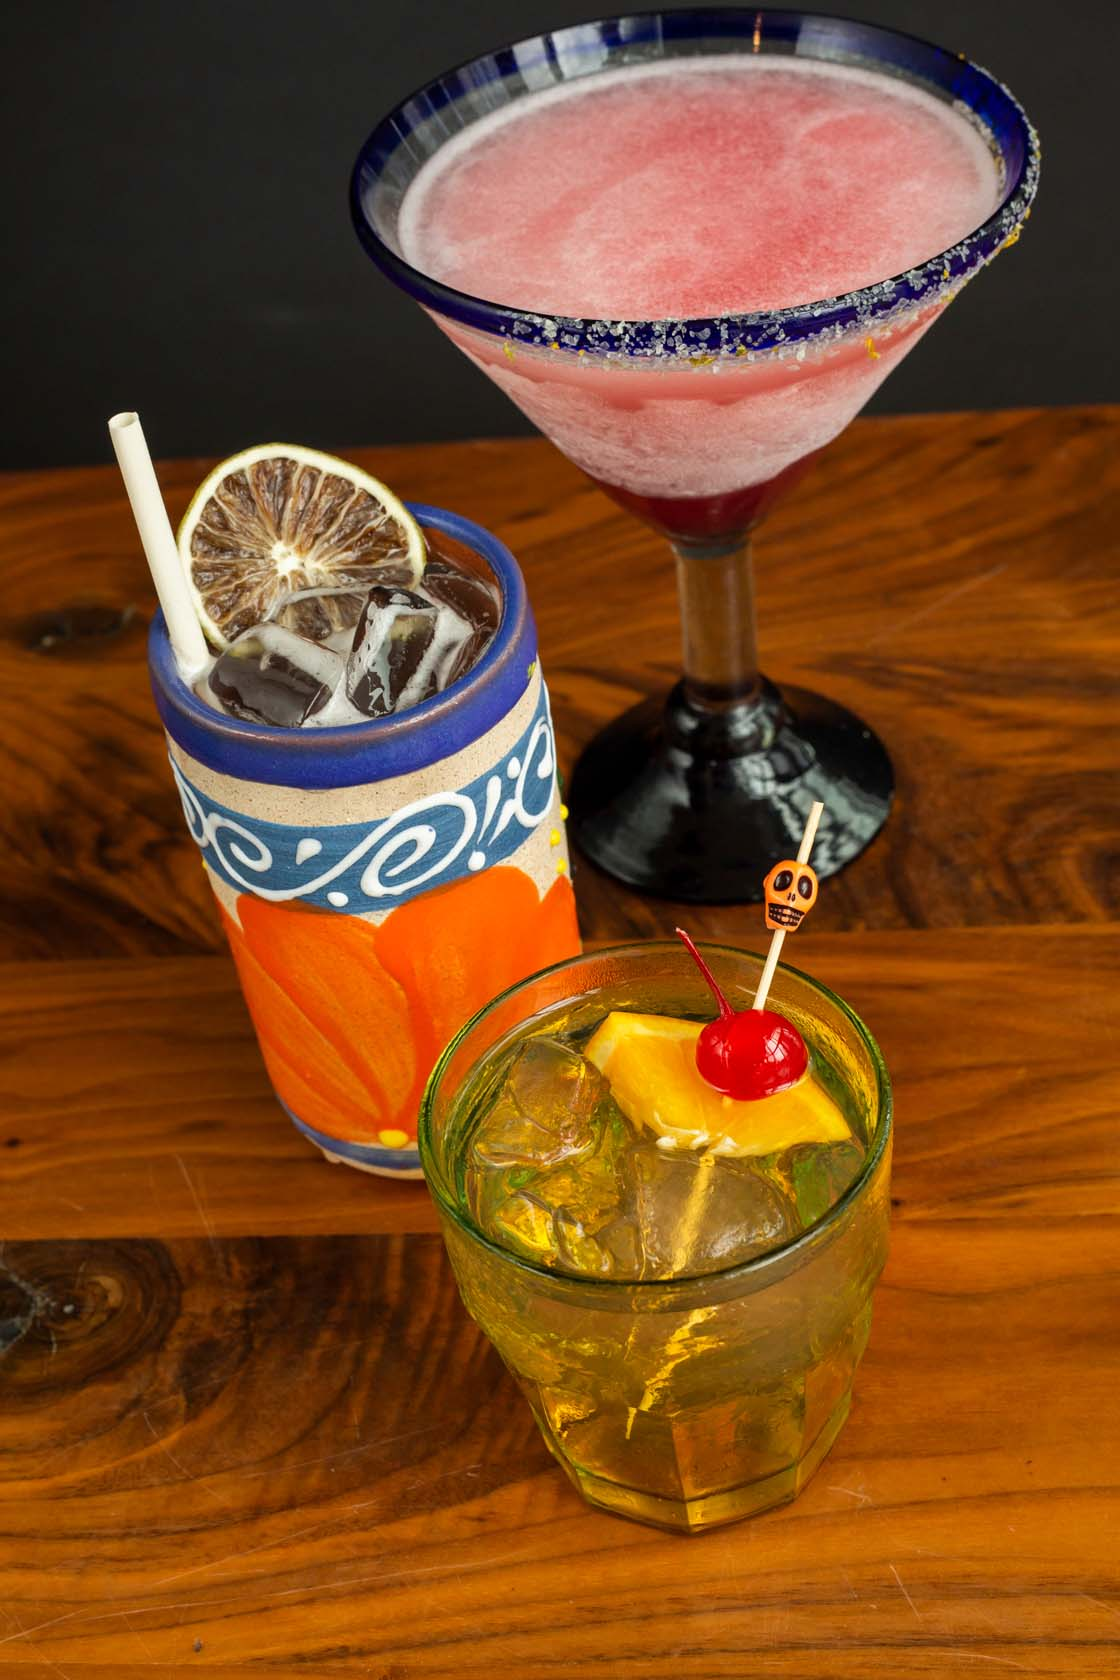 Three bar beverages - a tall pink margarita with salted rim in martini style glass; medium sized ceramic glass with iced beverage and large straw; short glass with tequila on rocks with orange and cherry garnish.